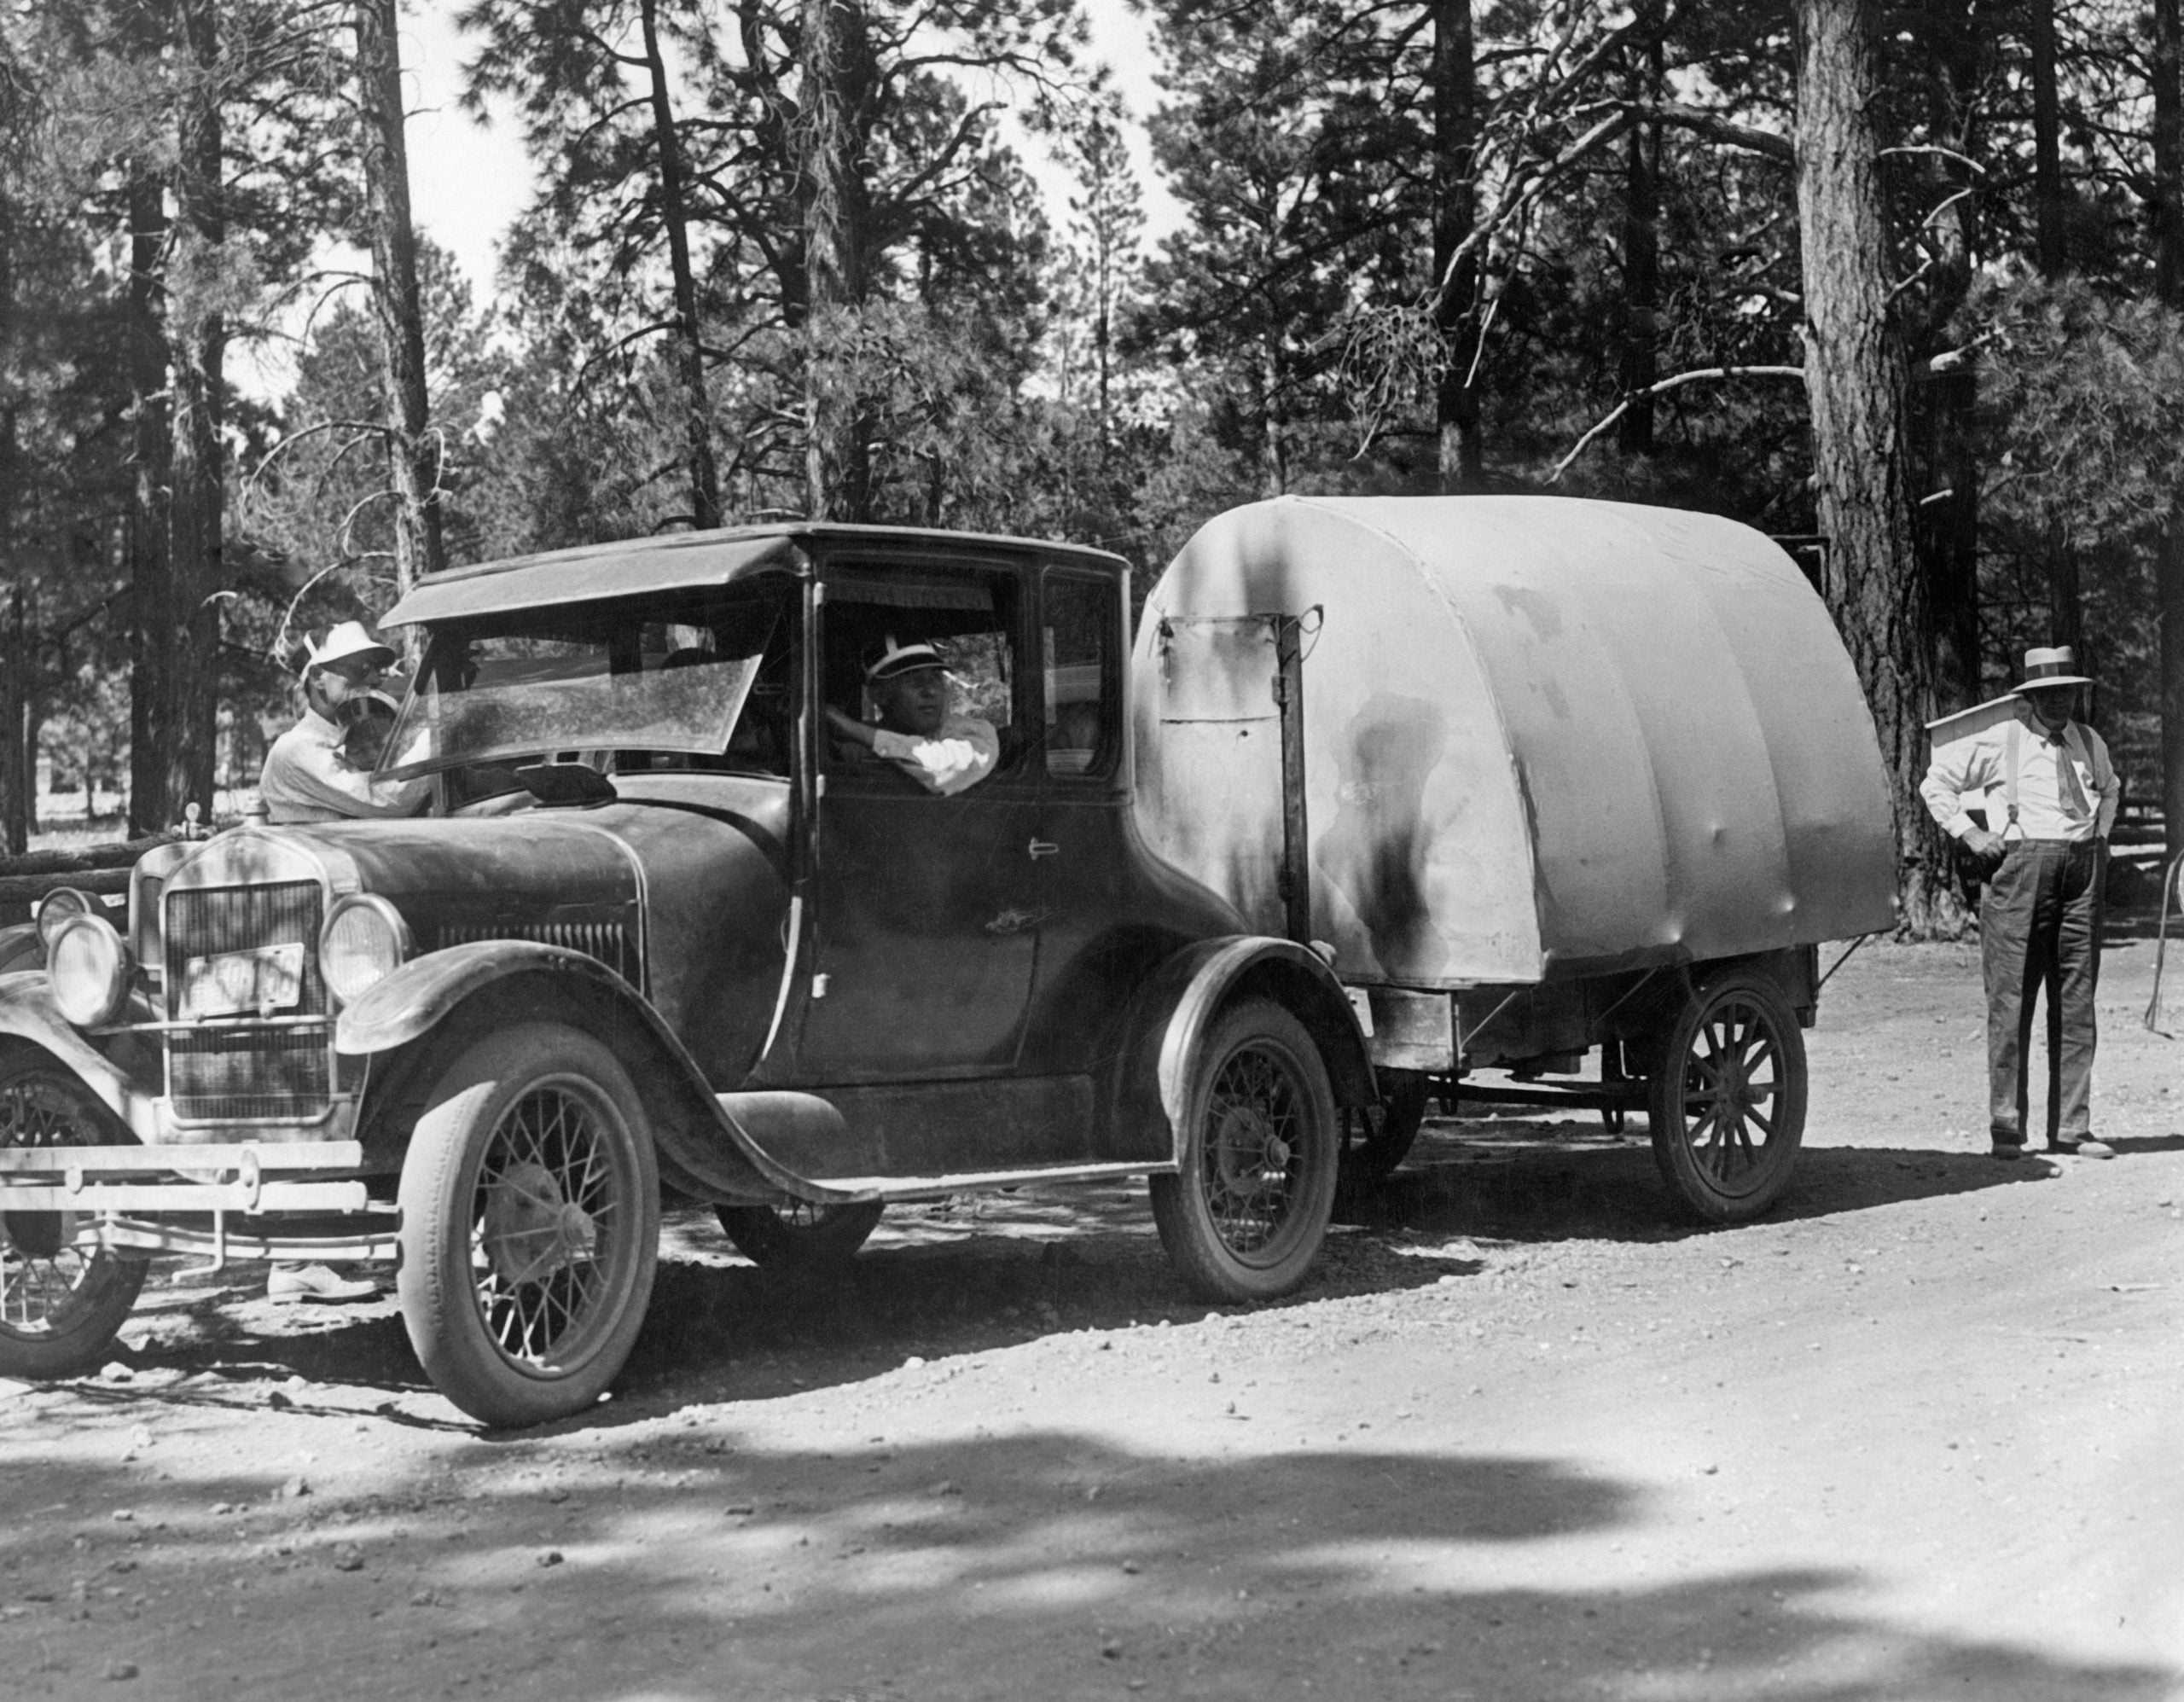 A car pulls an early caravan with tent construction in the Kaibab National Forest on the northern edge of the Grand Canyon.